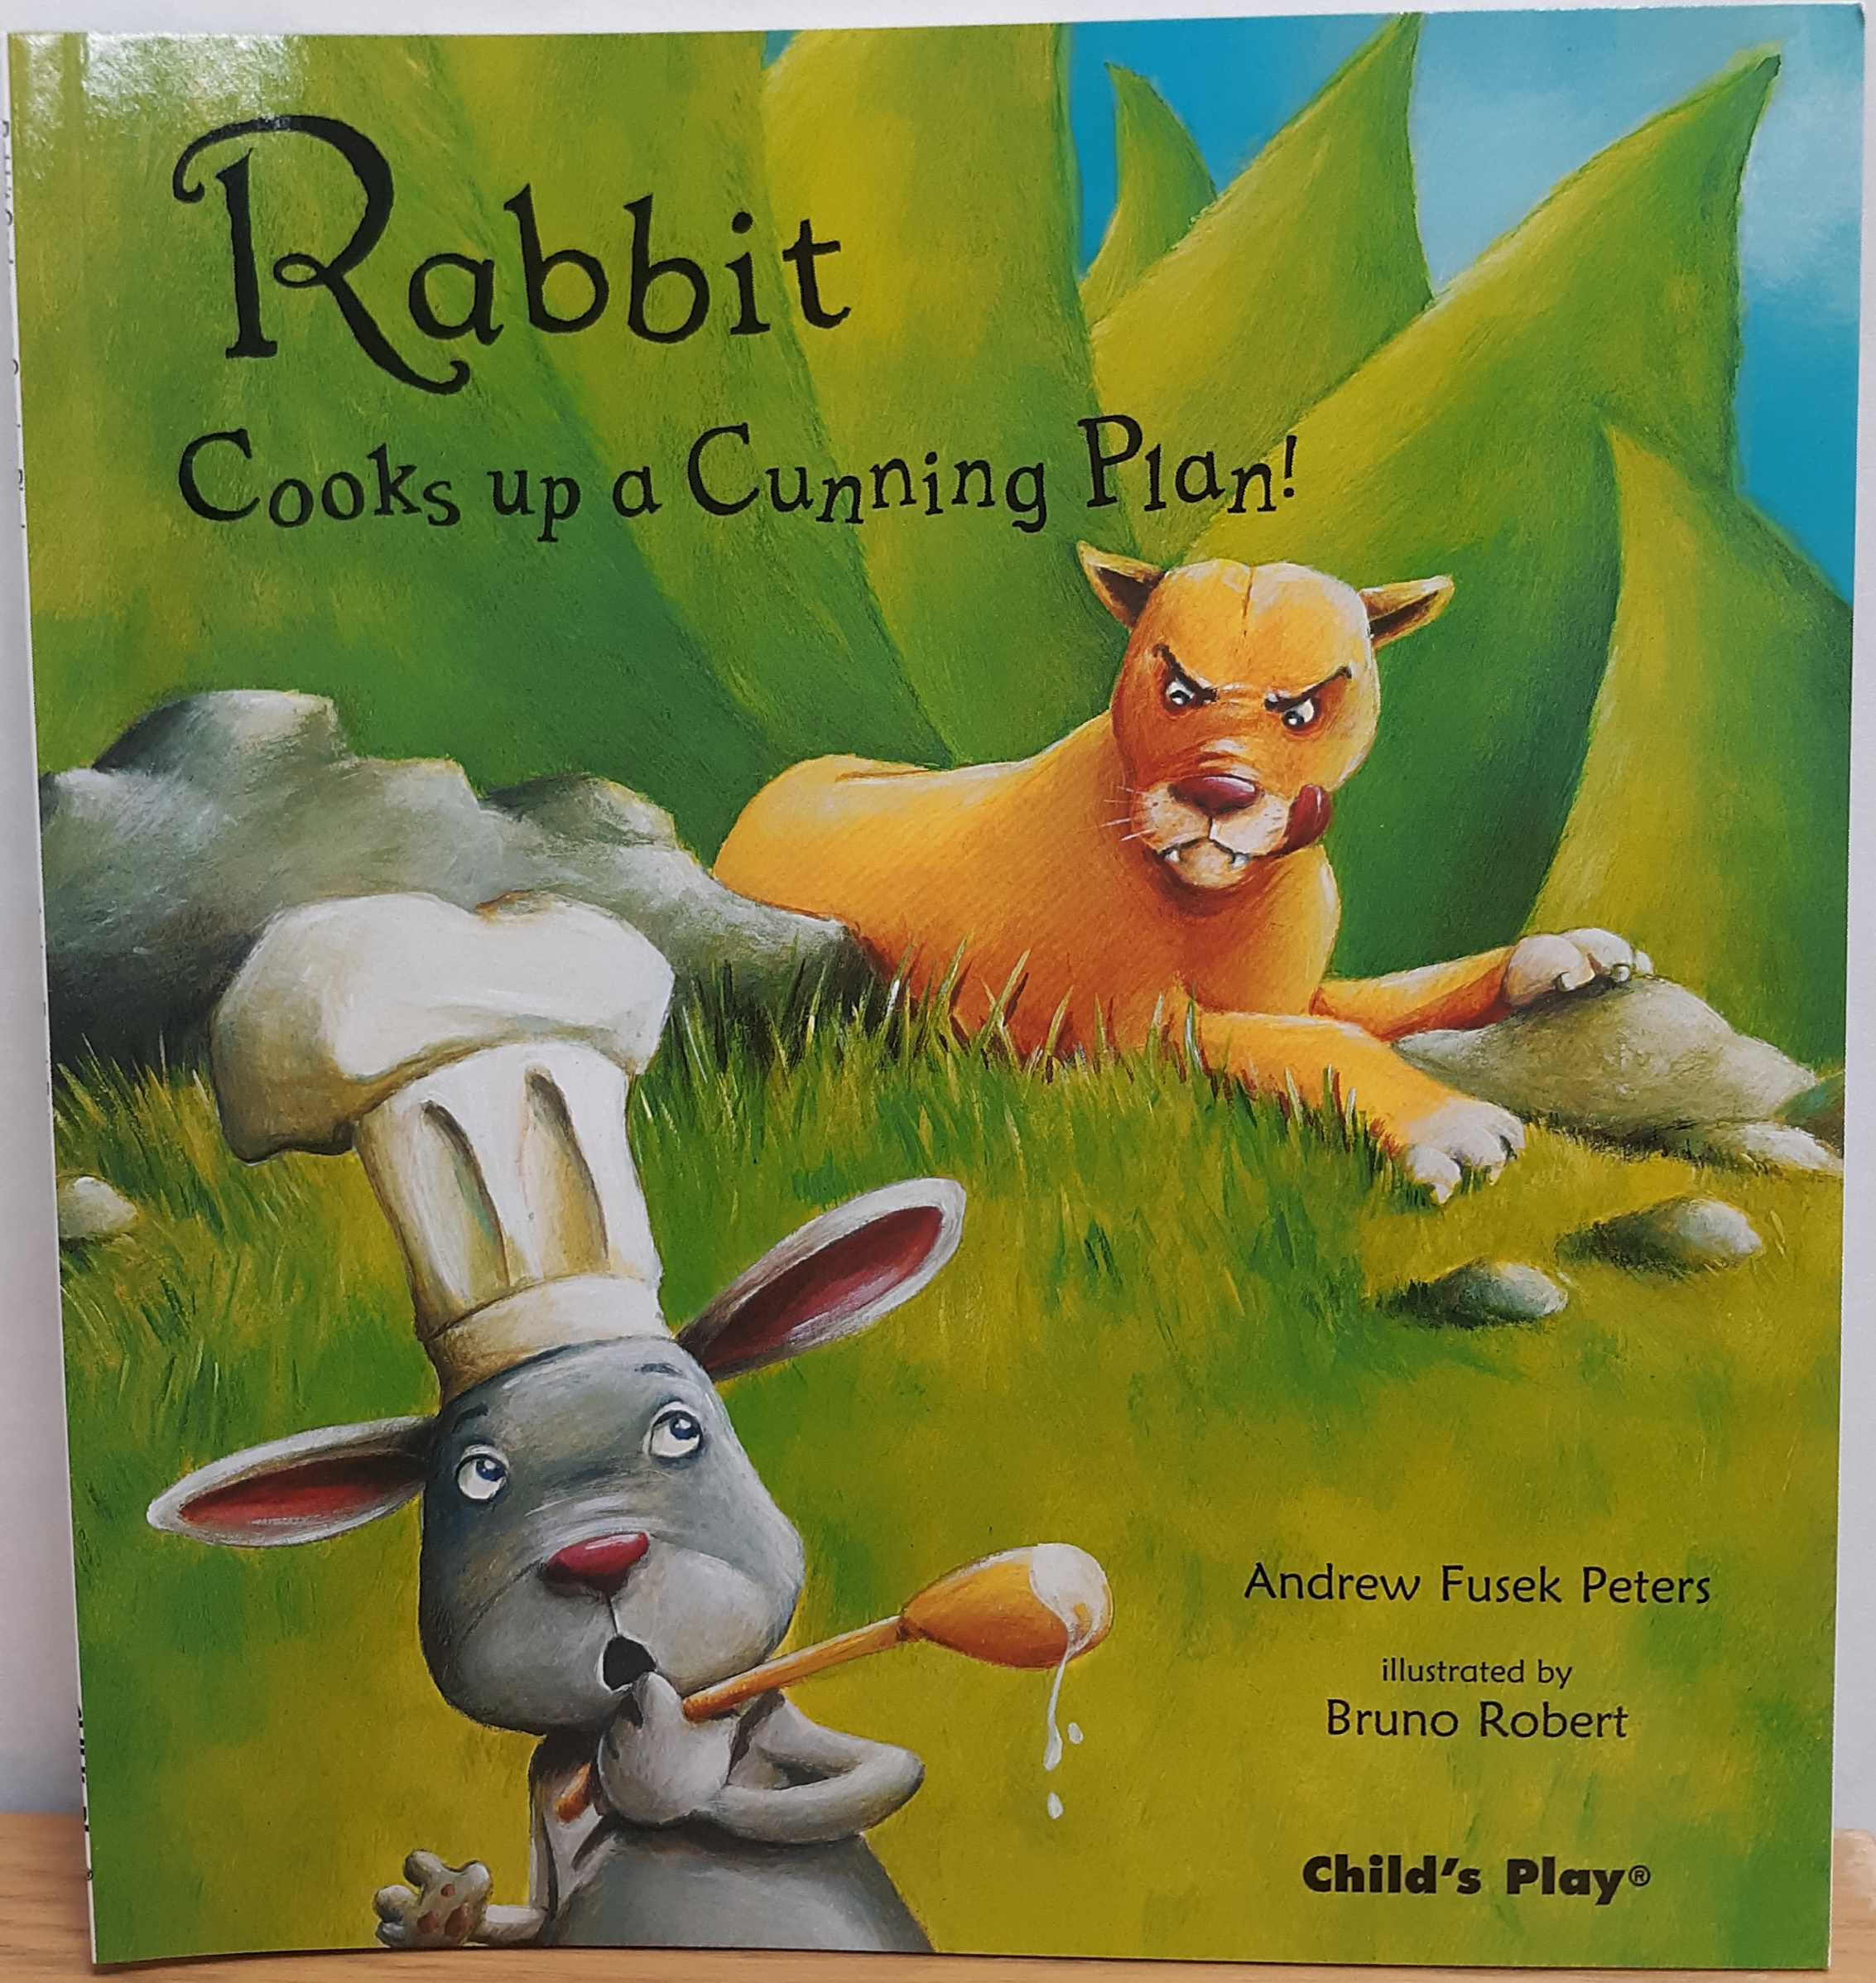 https://0201.nccdn.net/4_2/000/000/01e/20c/rabbit-cooks-up-a-cunning-plan.png